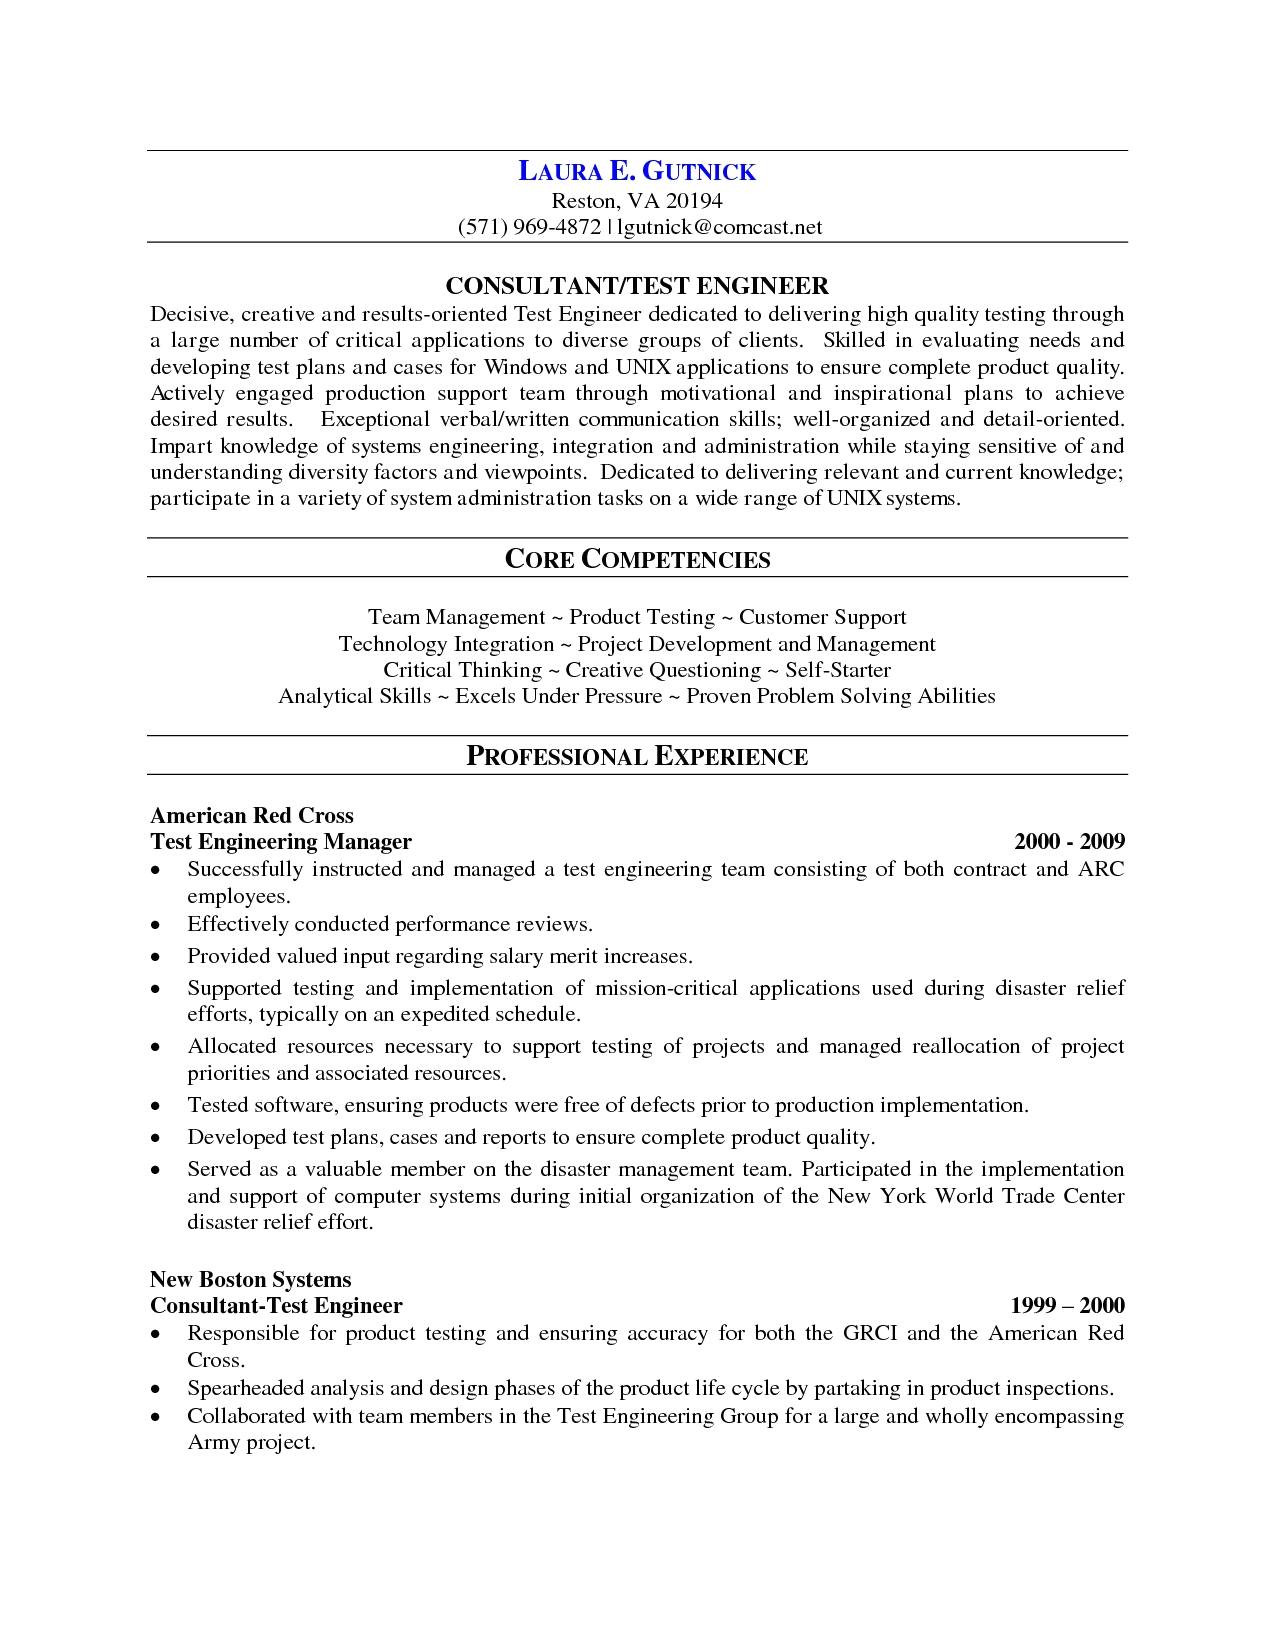 Two Years Experience Resume Sample Sample Experience Resume format Lovely software Testing